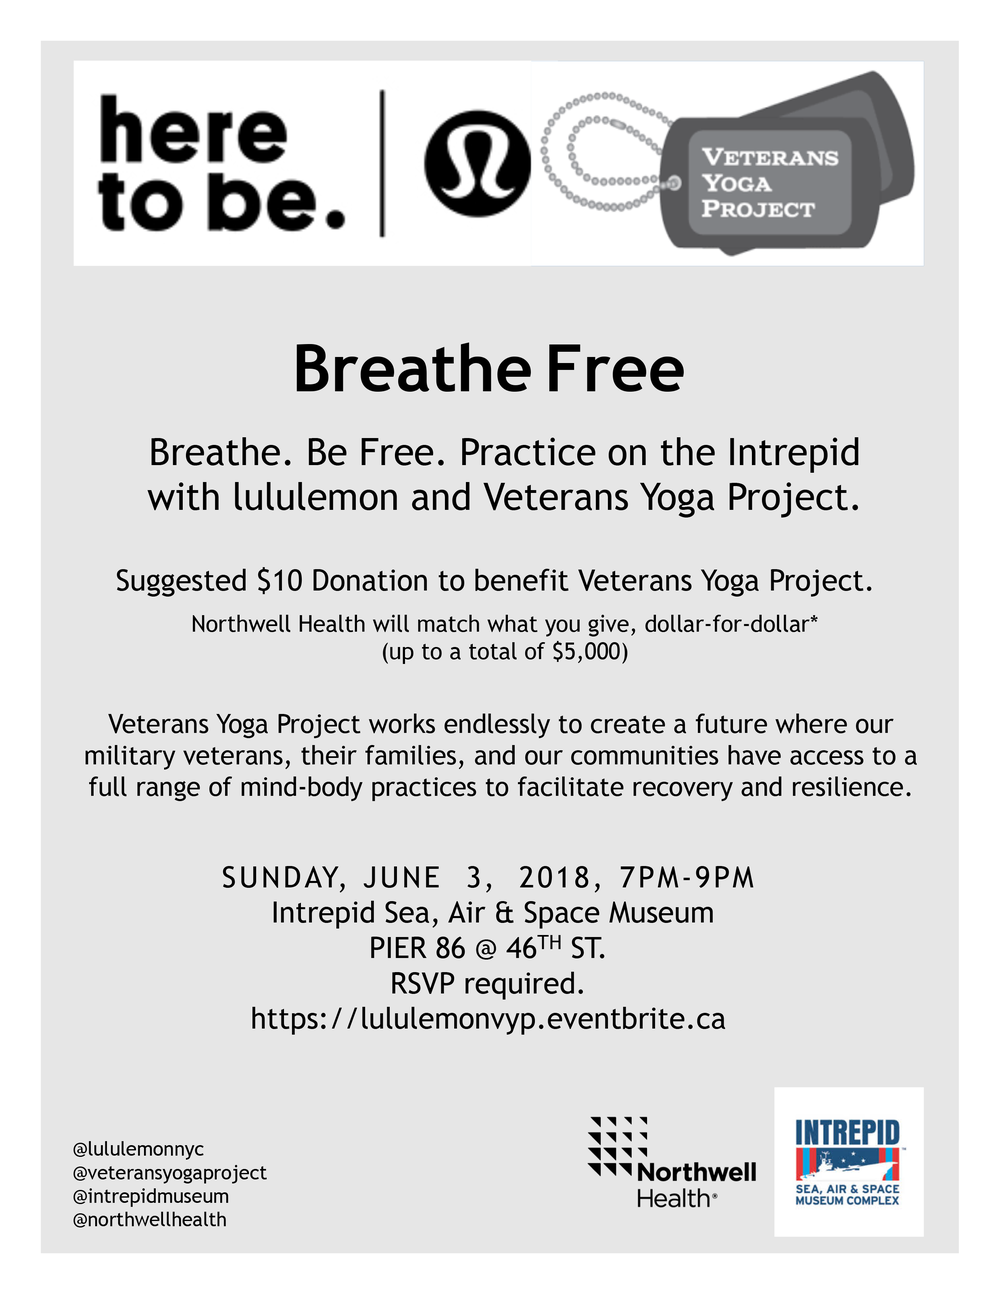 Click the USS Intrepid to find out more about the Breathe Free event.